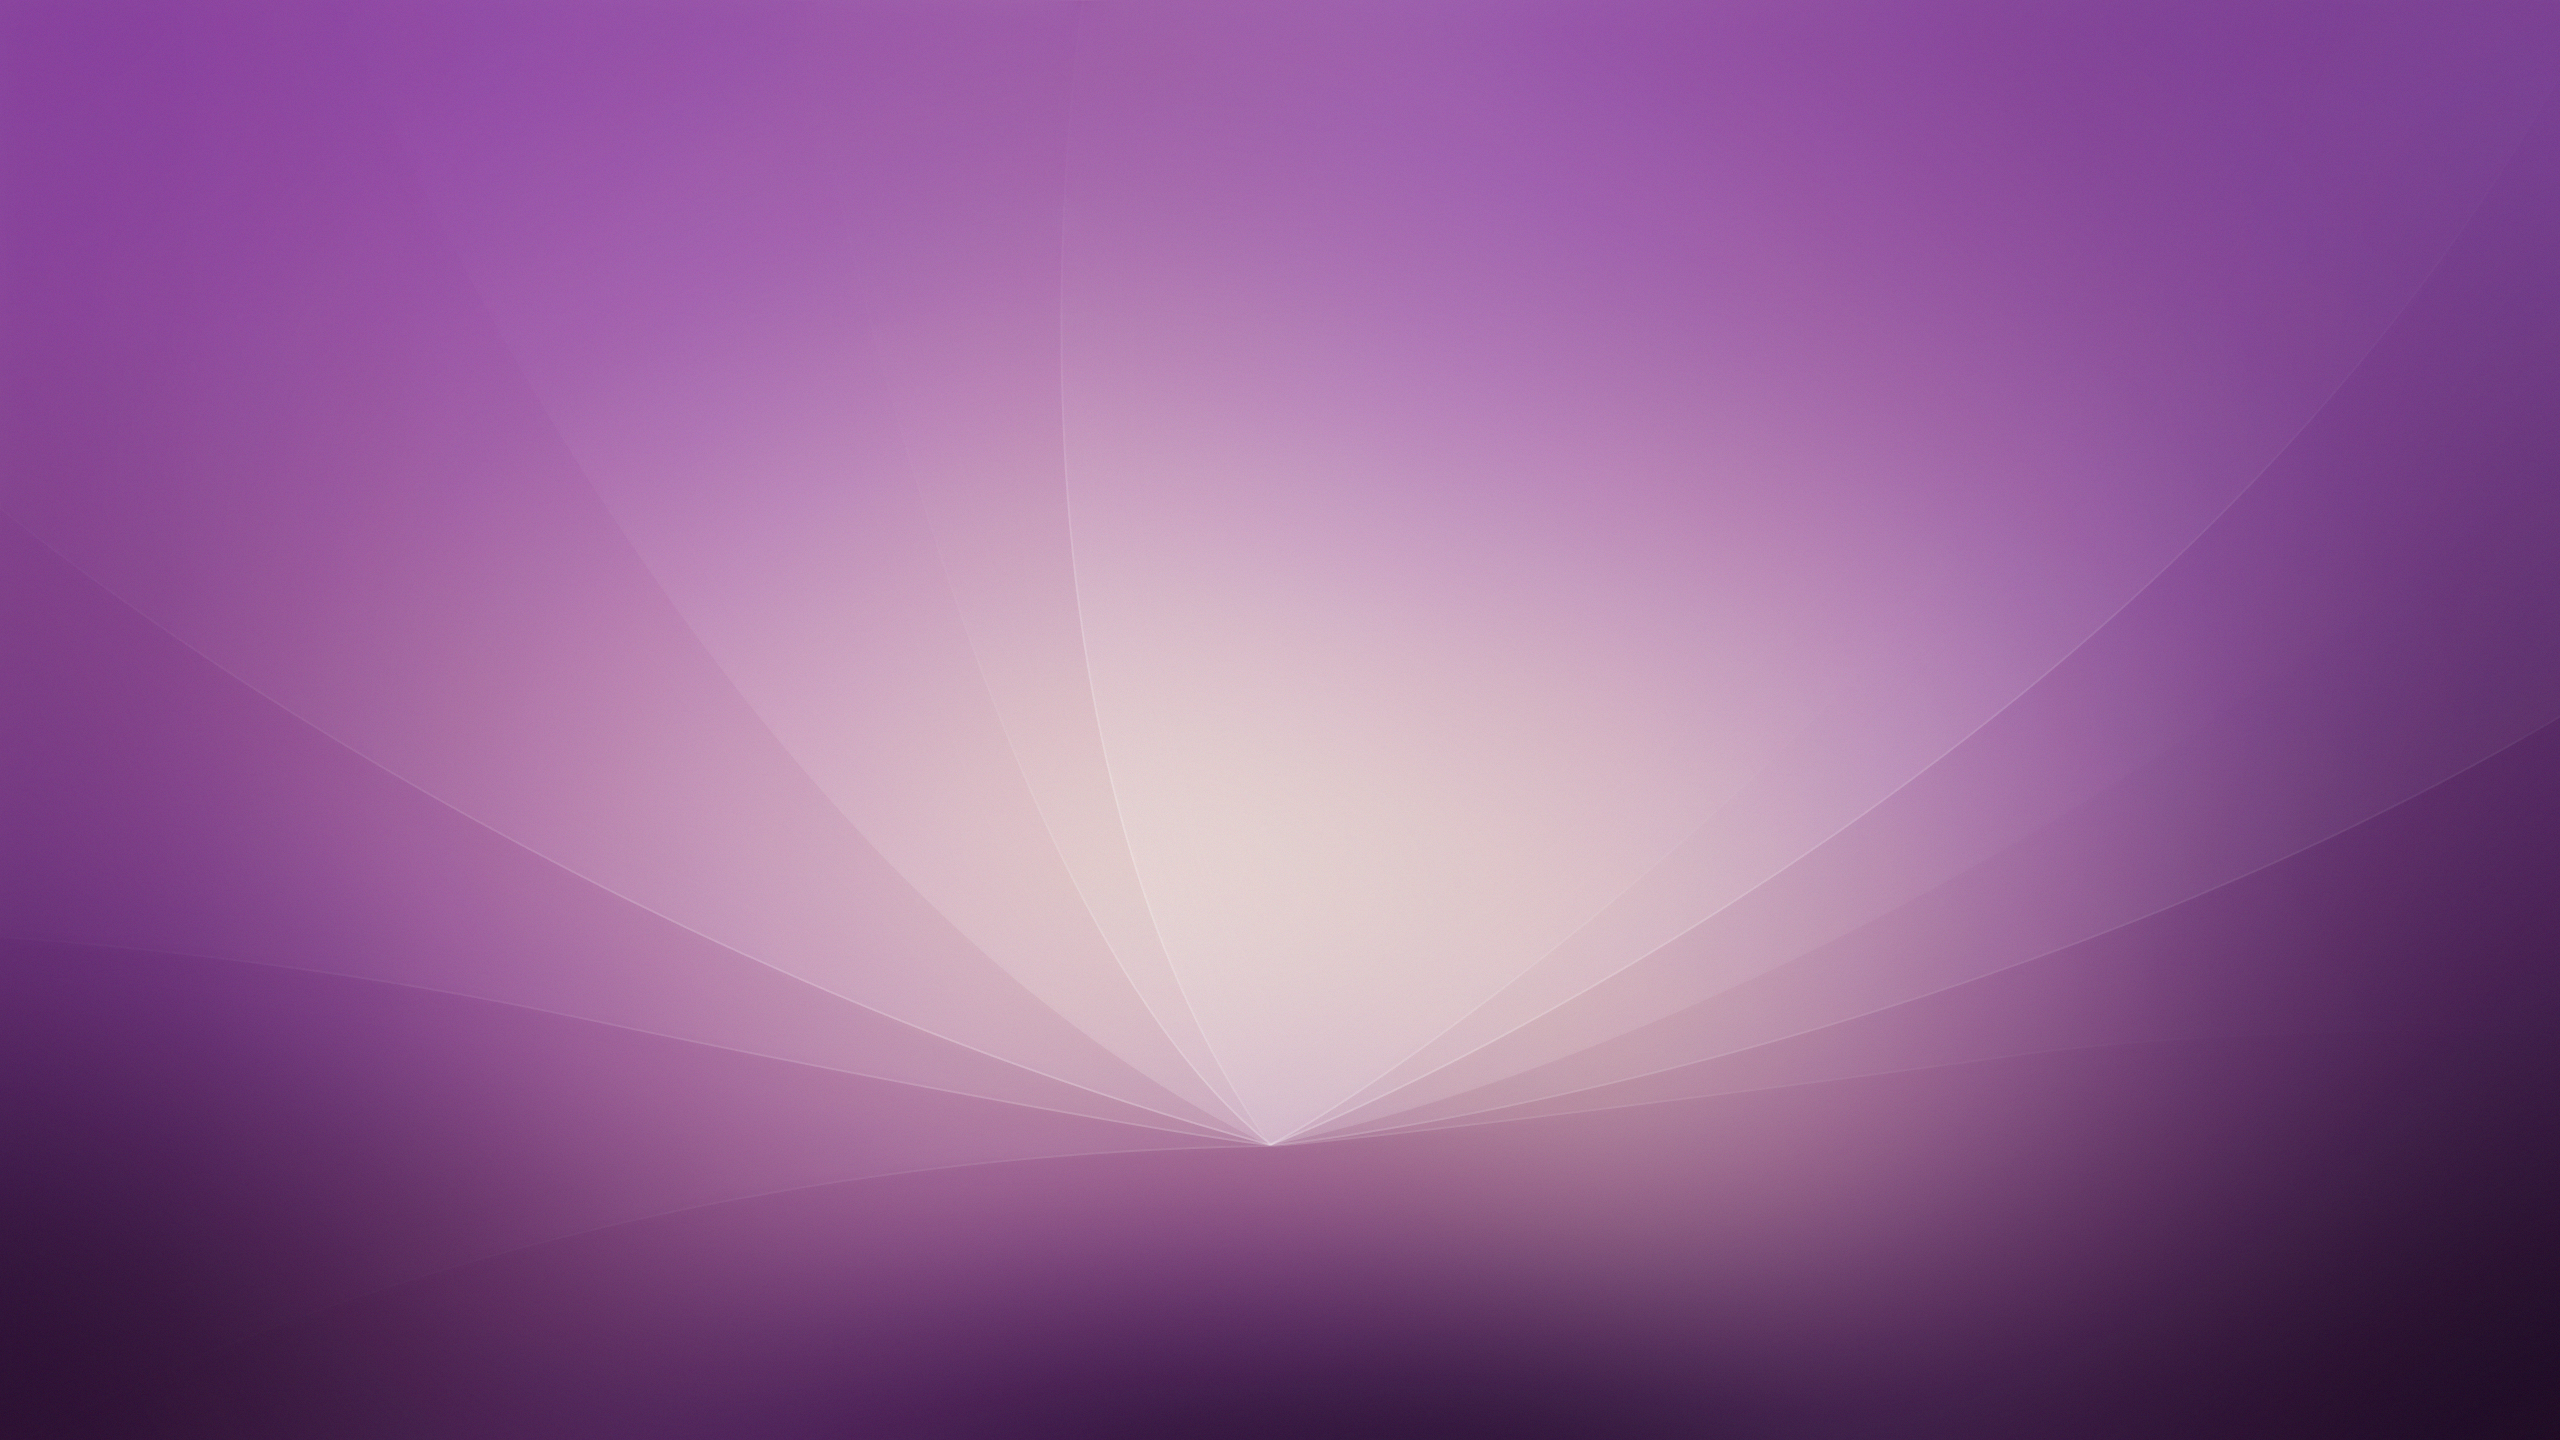 Simple Clean Abstract Purple HD Desktop wallpaper images and photos 2560x1440